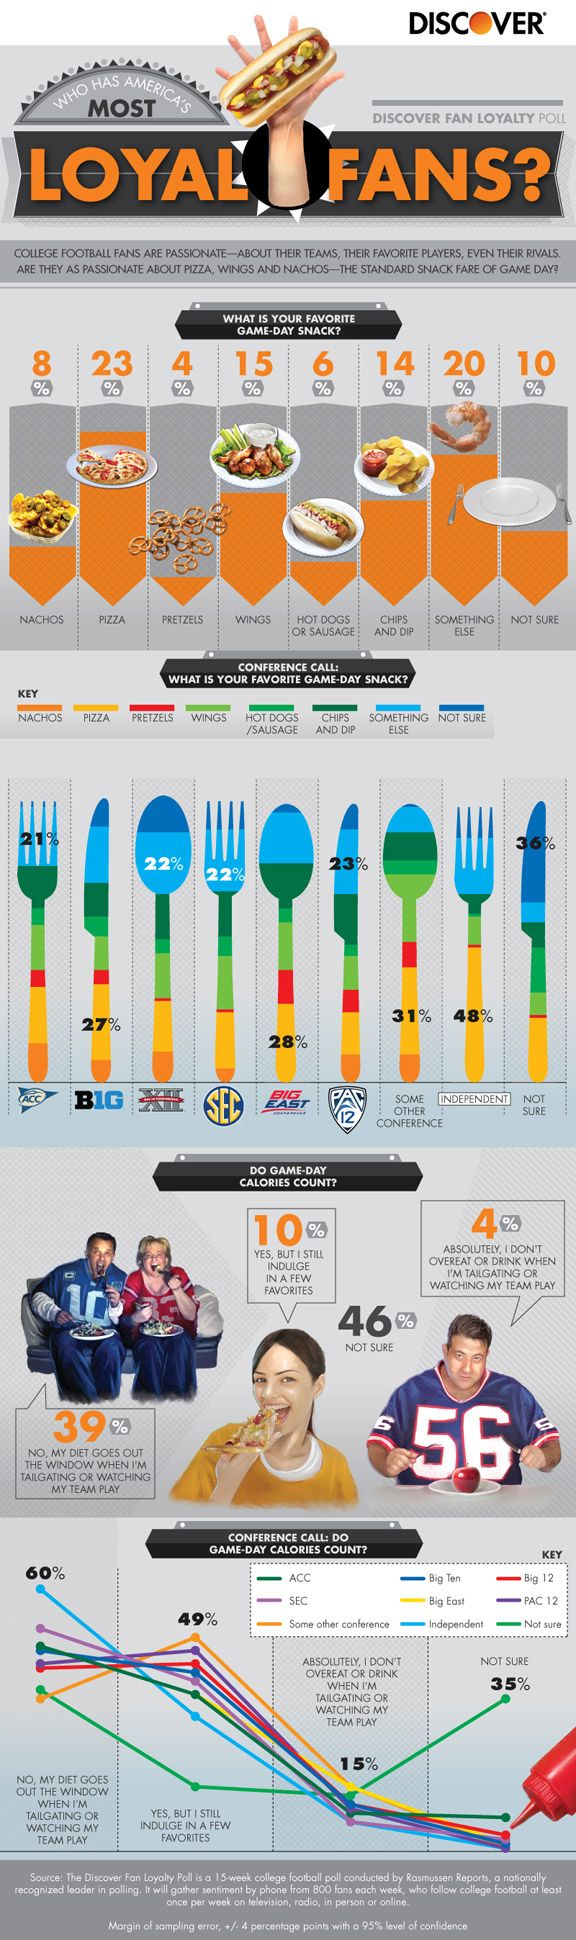 Infographic: College football fans & food - Sports Pictures, Images, Fan Videos, Galleries - Visuals Blog - ESPN Playbook - ESPN